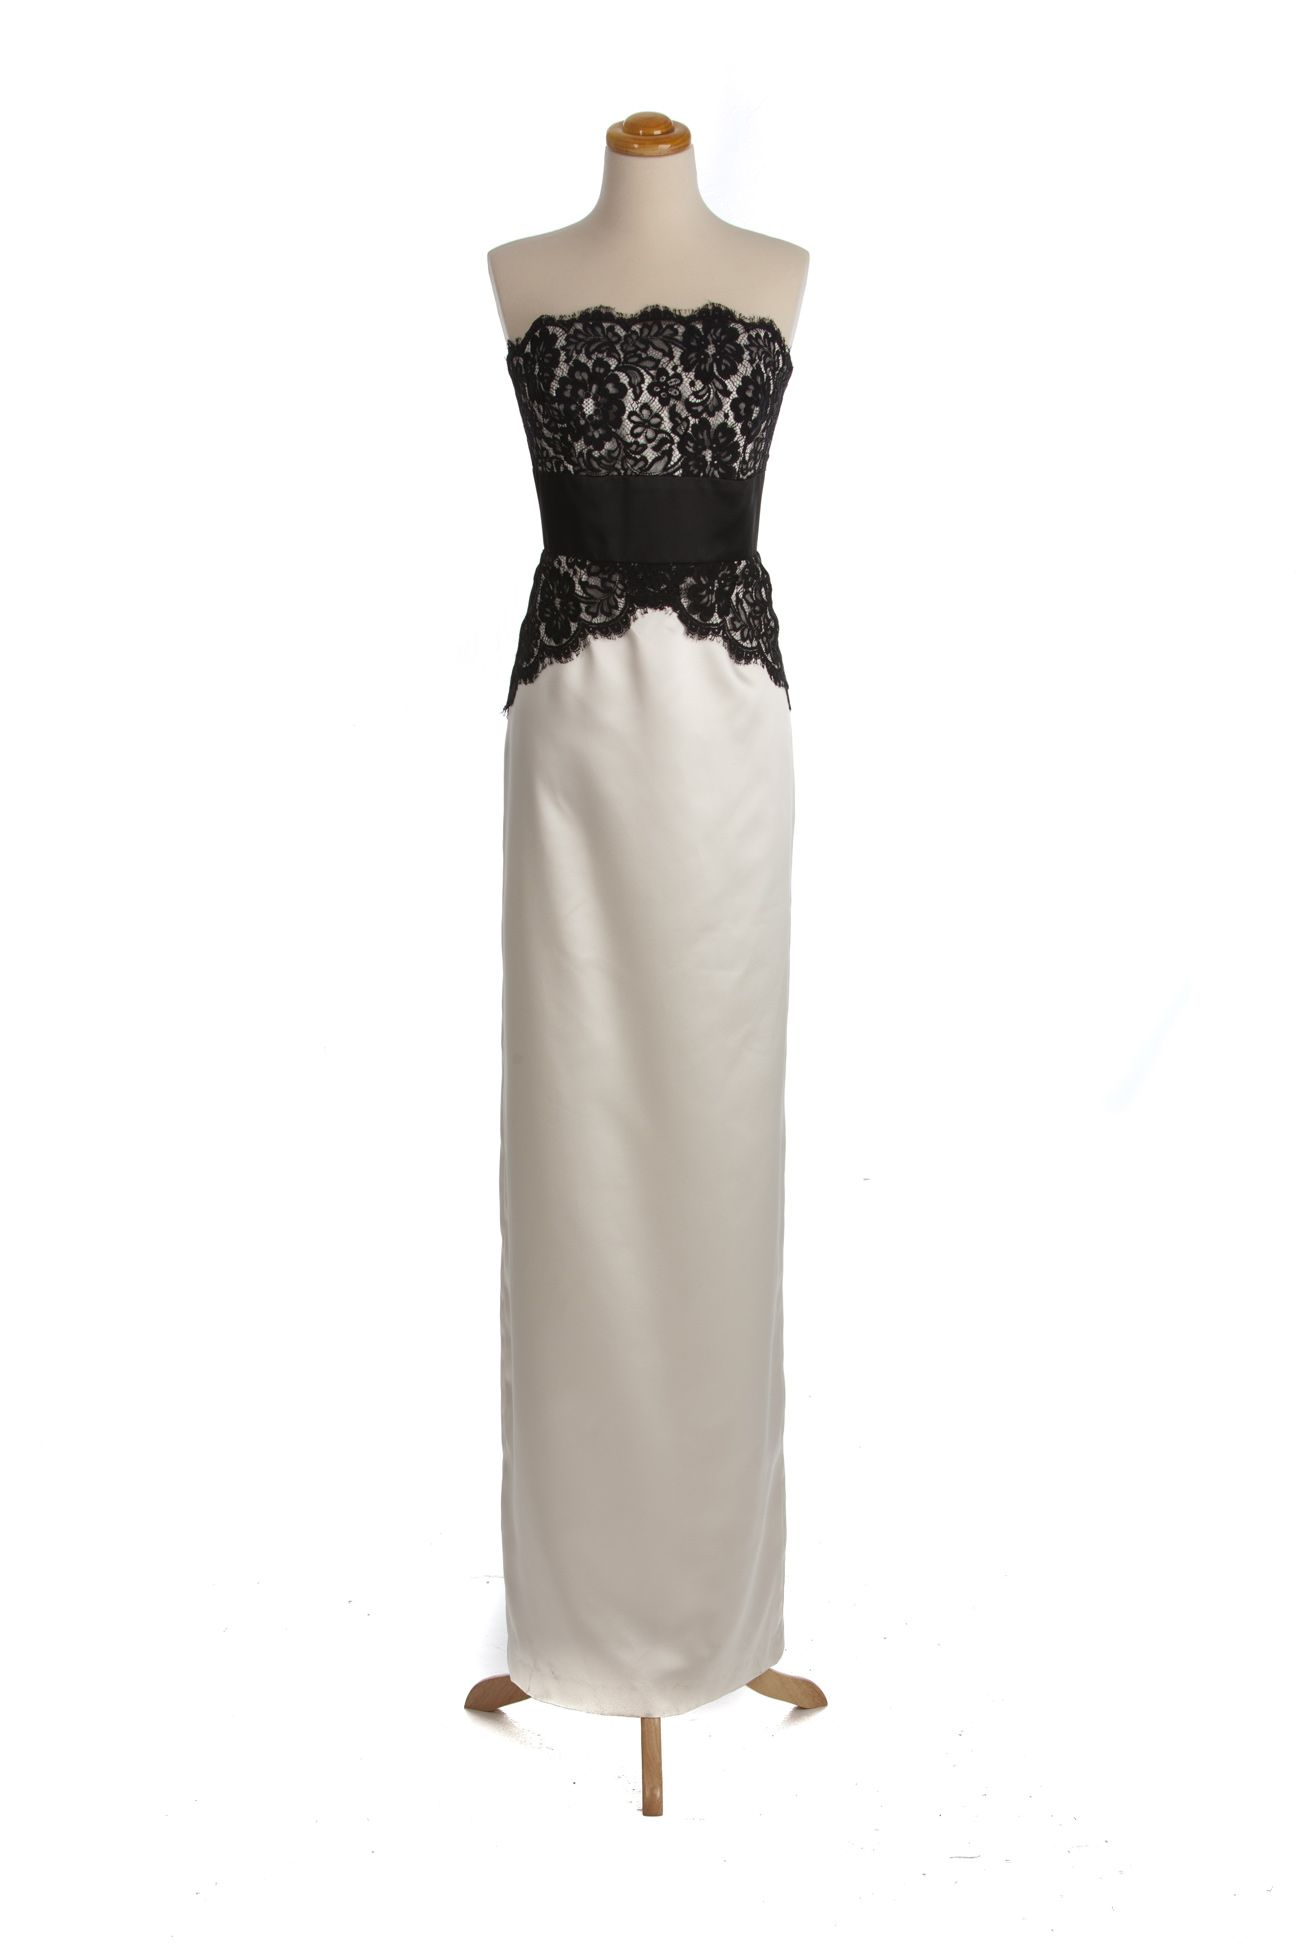 Satin Gown with Black Lace Overlay by Dessy Collection // shopjoielle.com